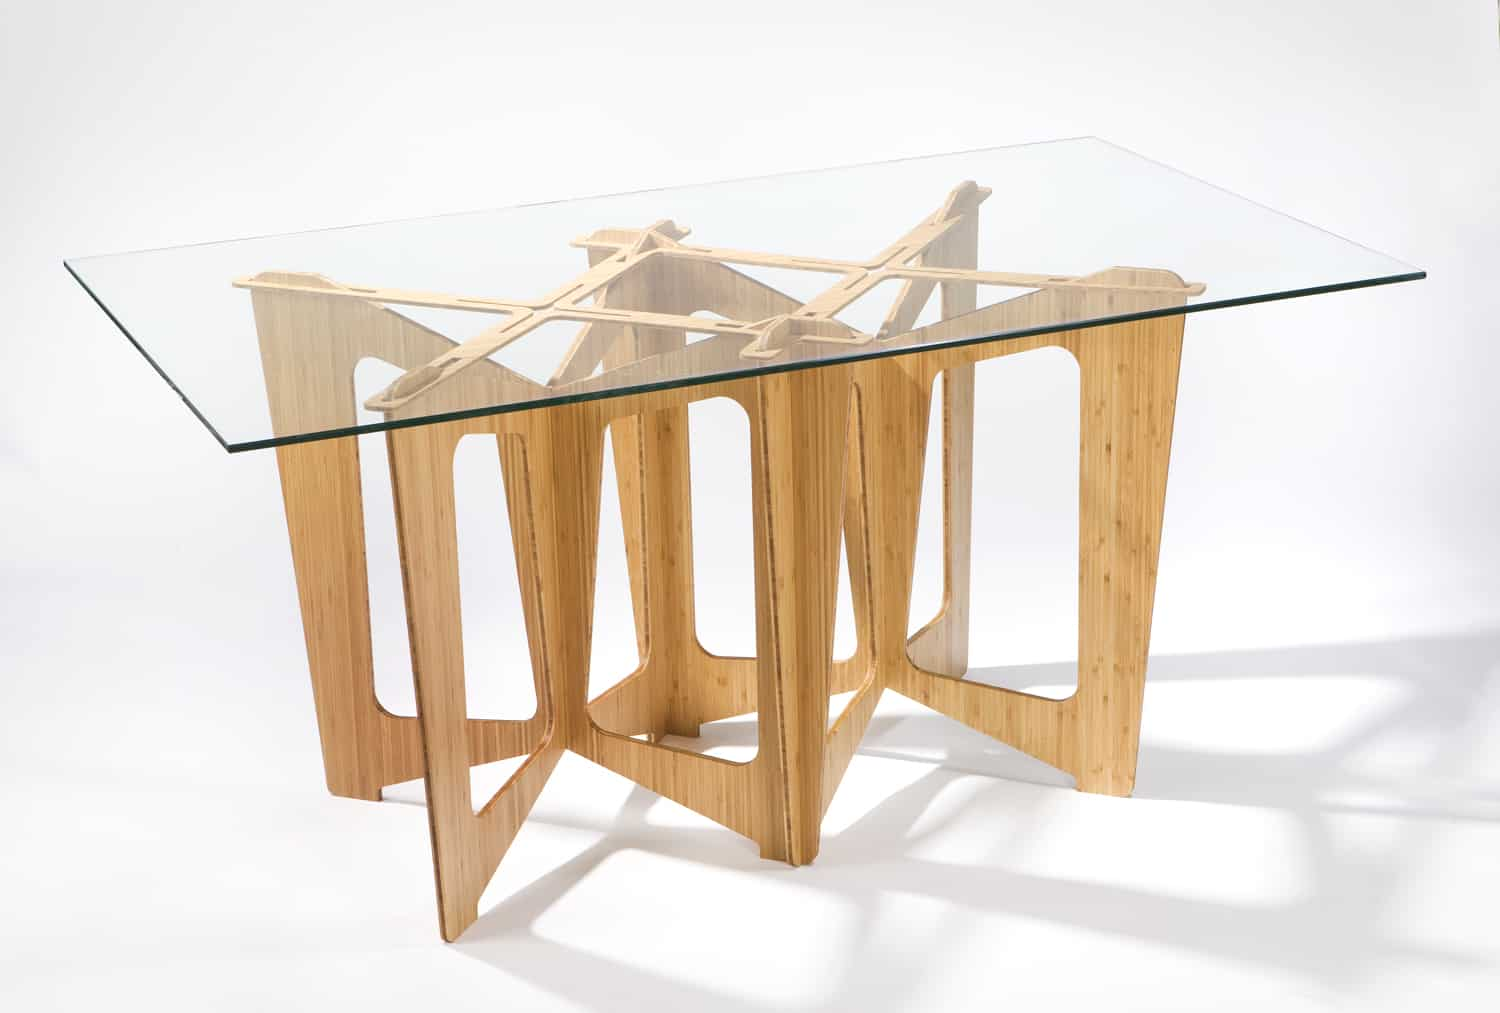 Beau Greta Ona Table By Elite From The Mansouri Collection